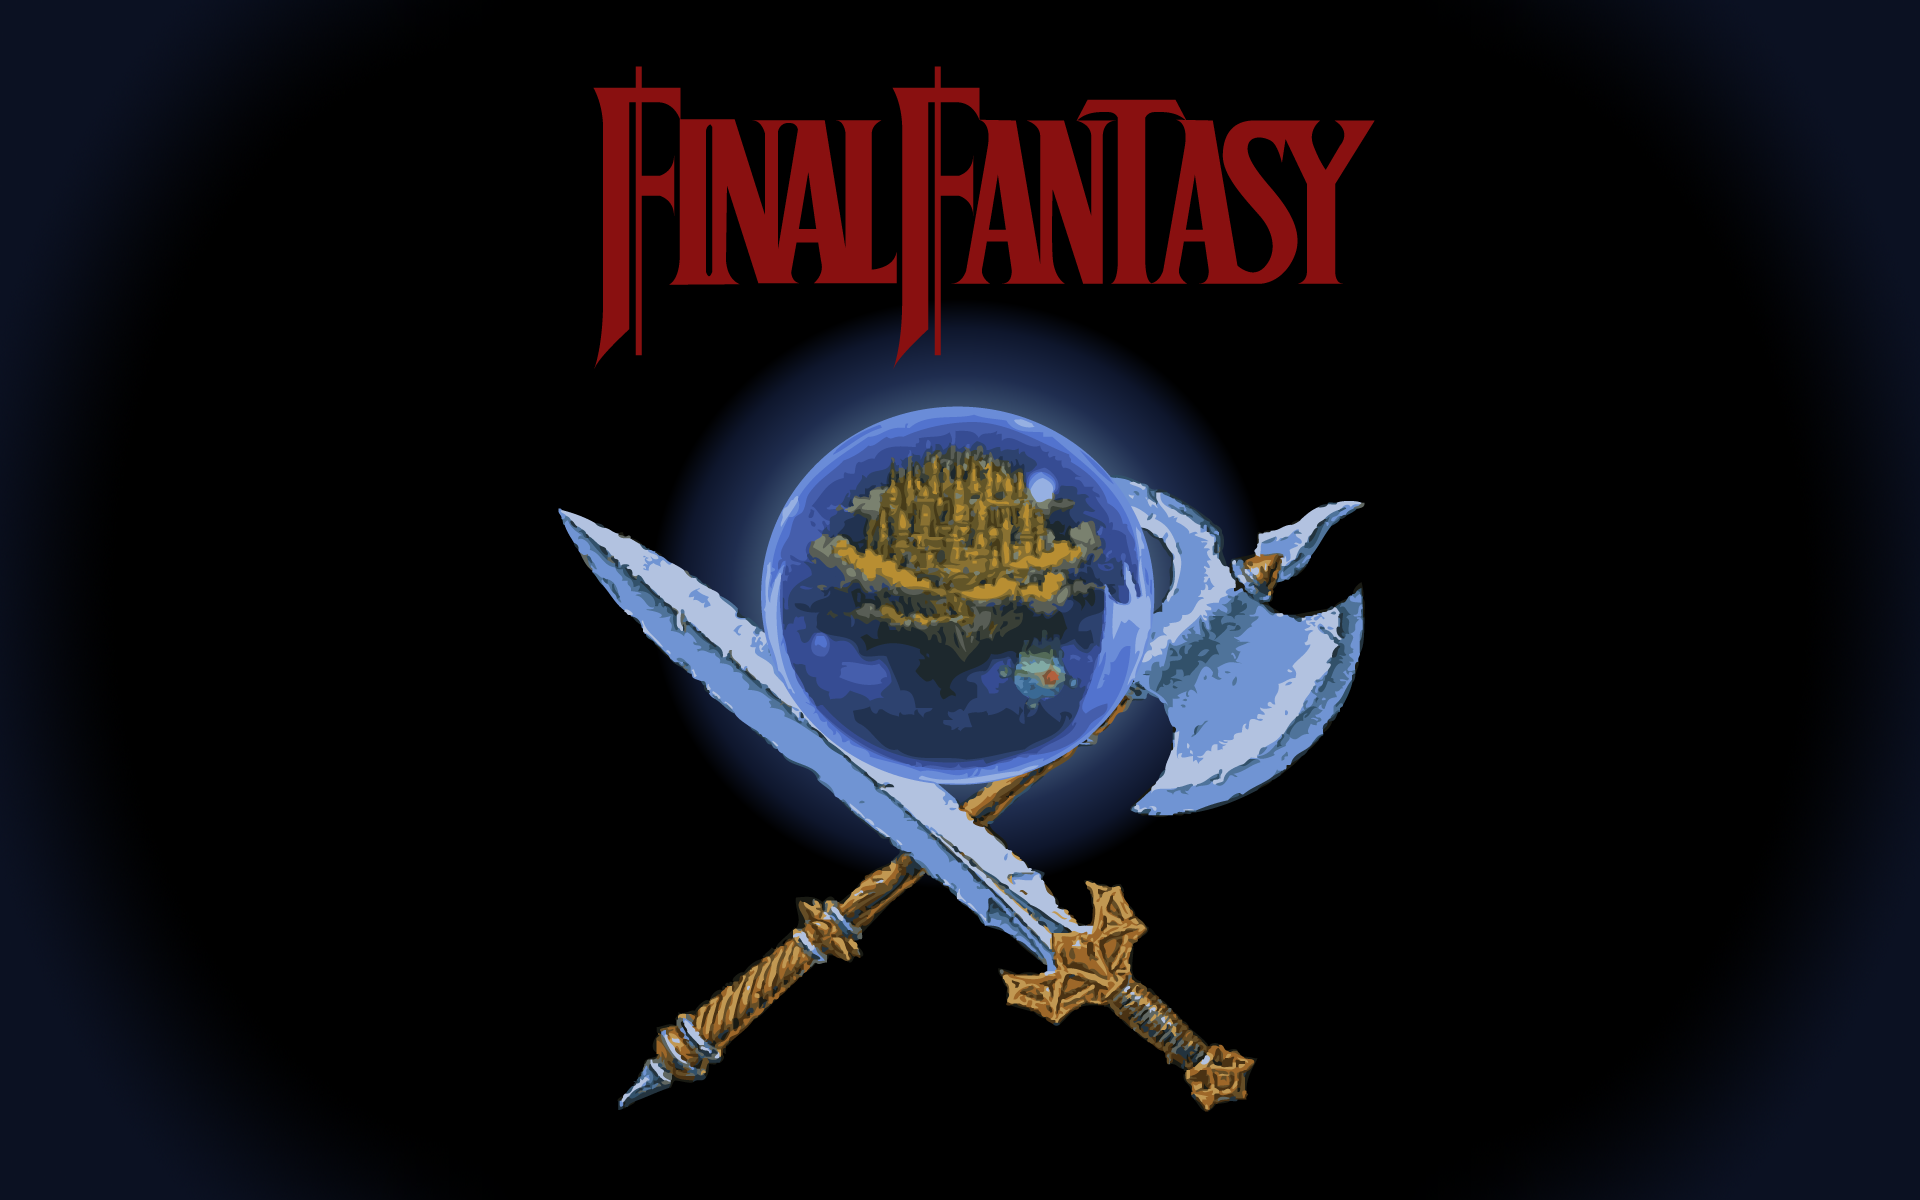 final fantasy 1 wallpaper